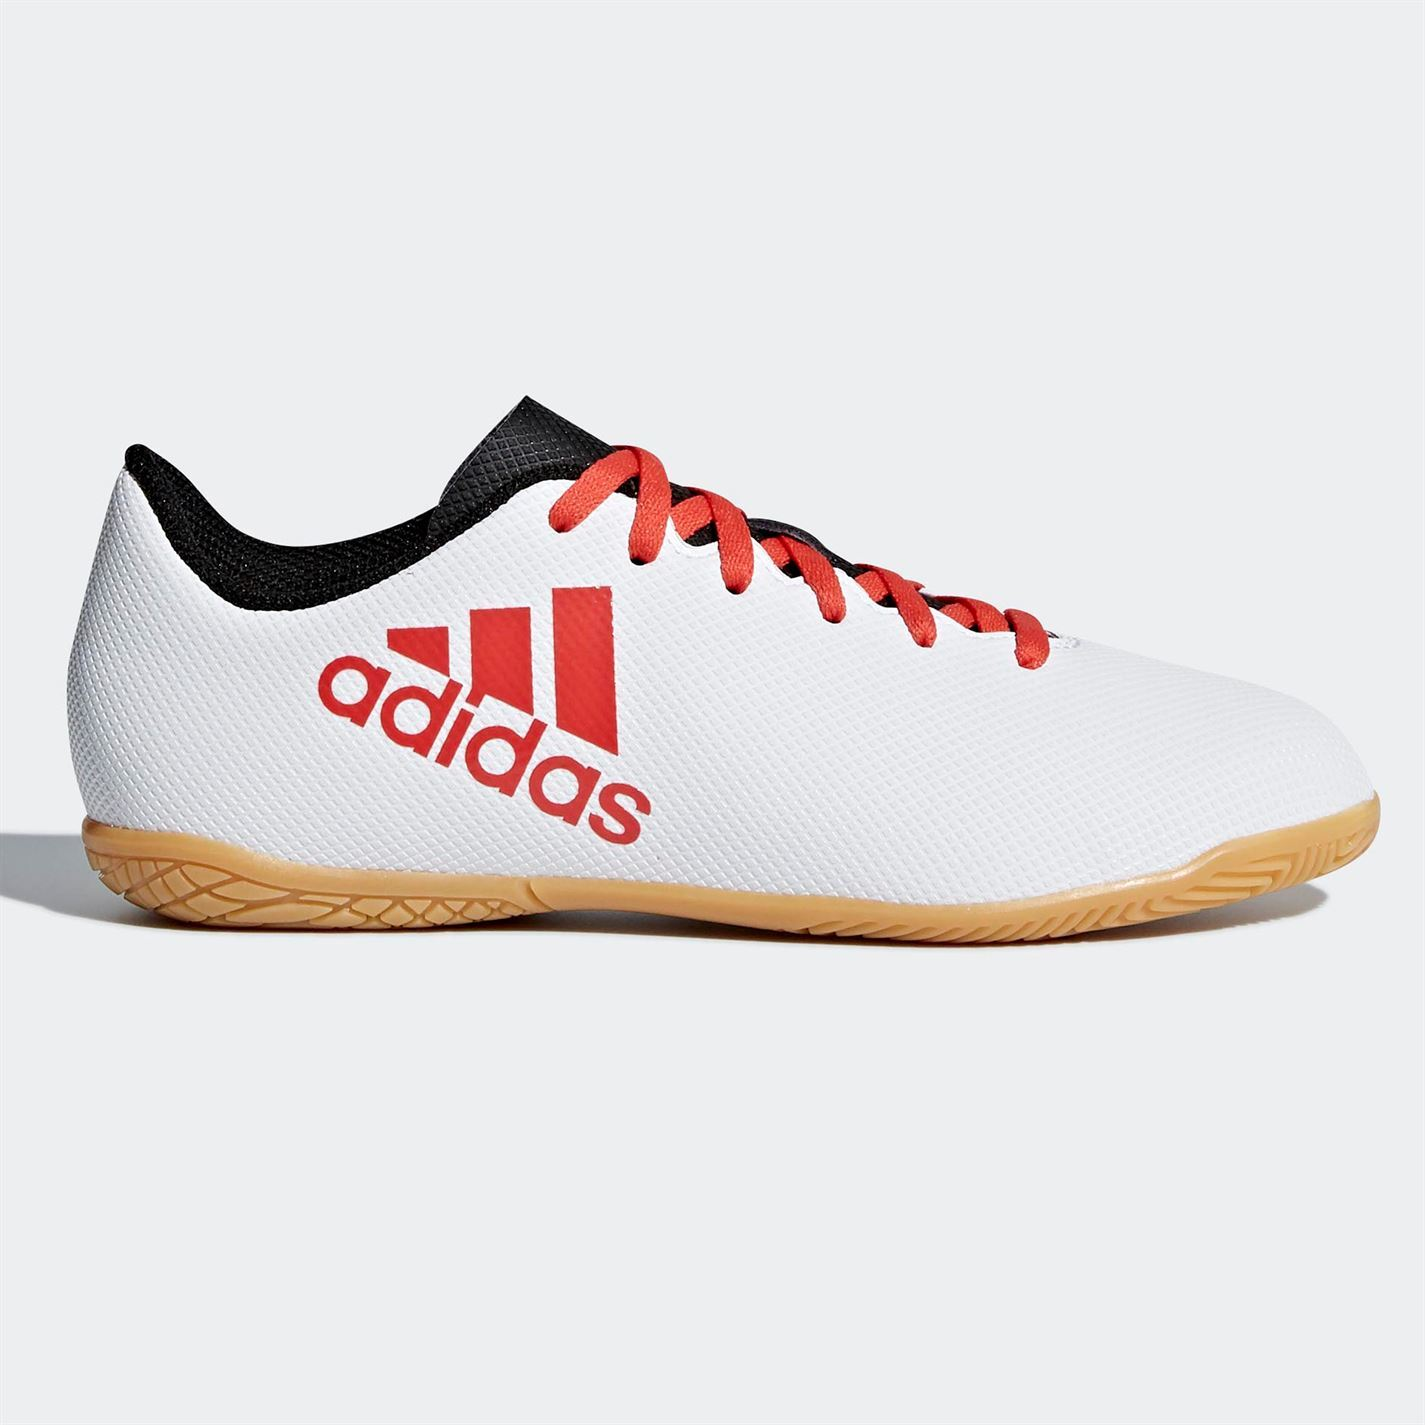 43d8a3119 adidas X Tango 17.4 Indoor Football Trainers Juniors White Soccer Shoes  Sneakers